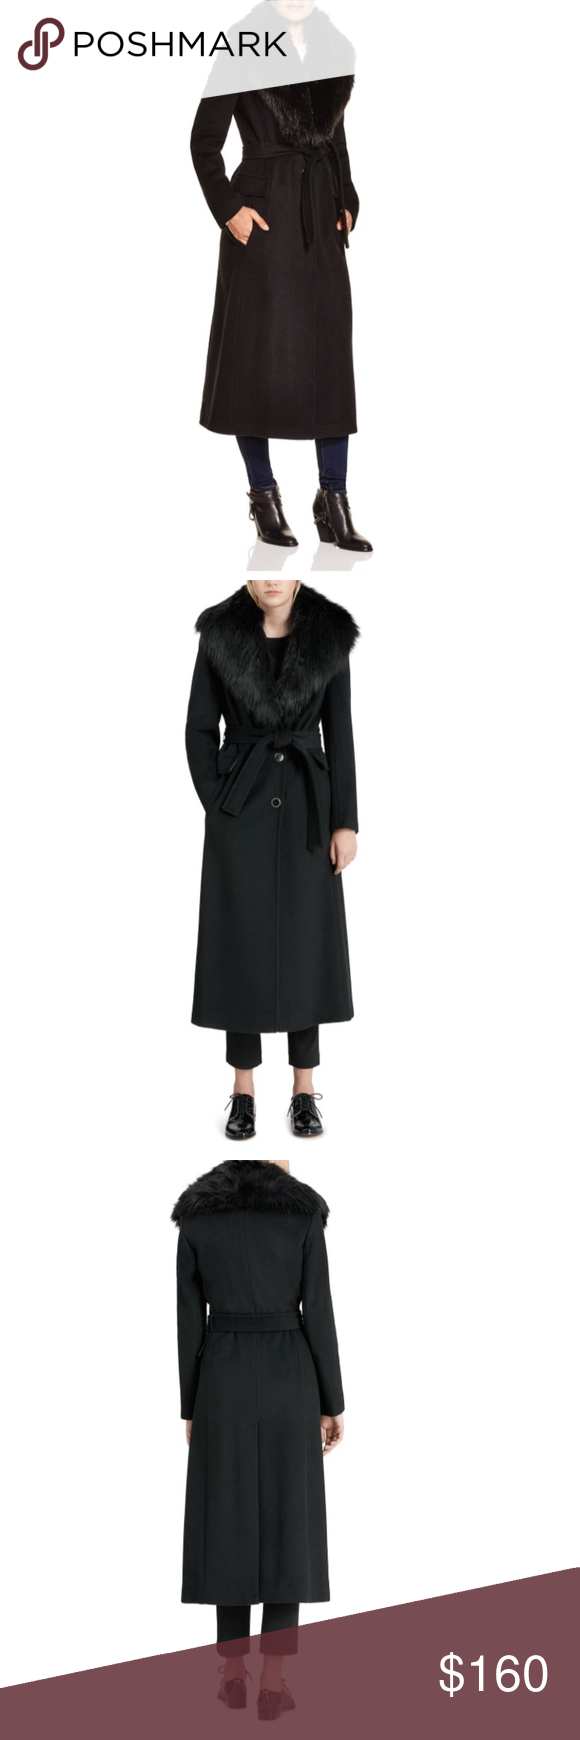 5ca4c19186e Calvin Klein Faux Fur Trim Wrap Coat With its flattering belted silhouette  and sumptuous faux-